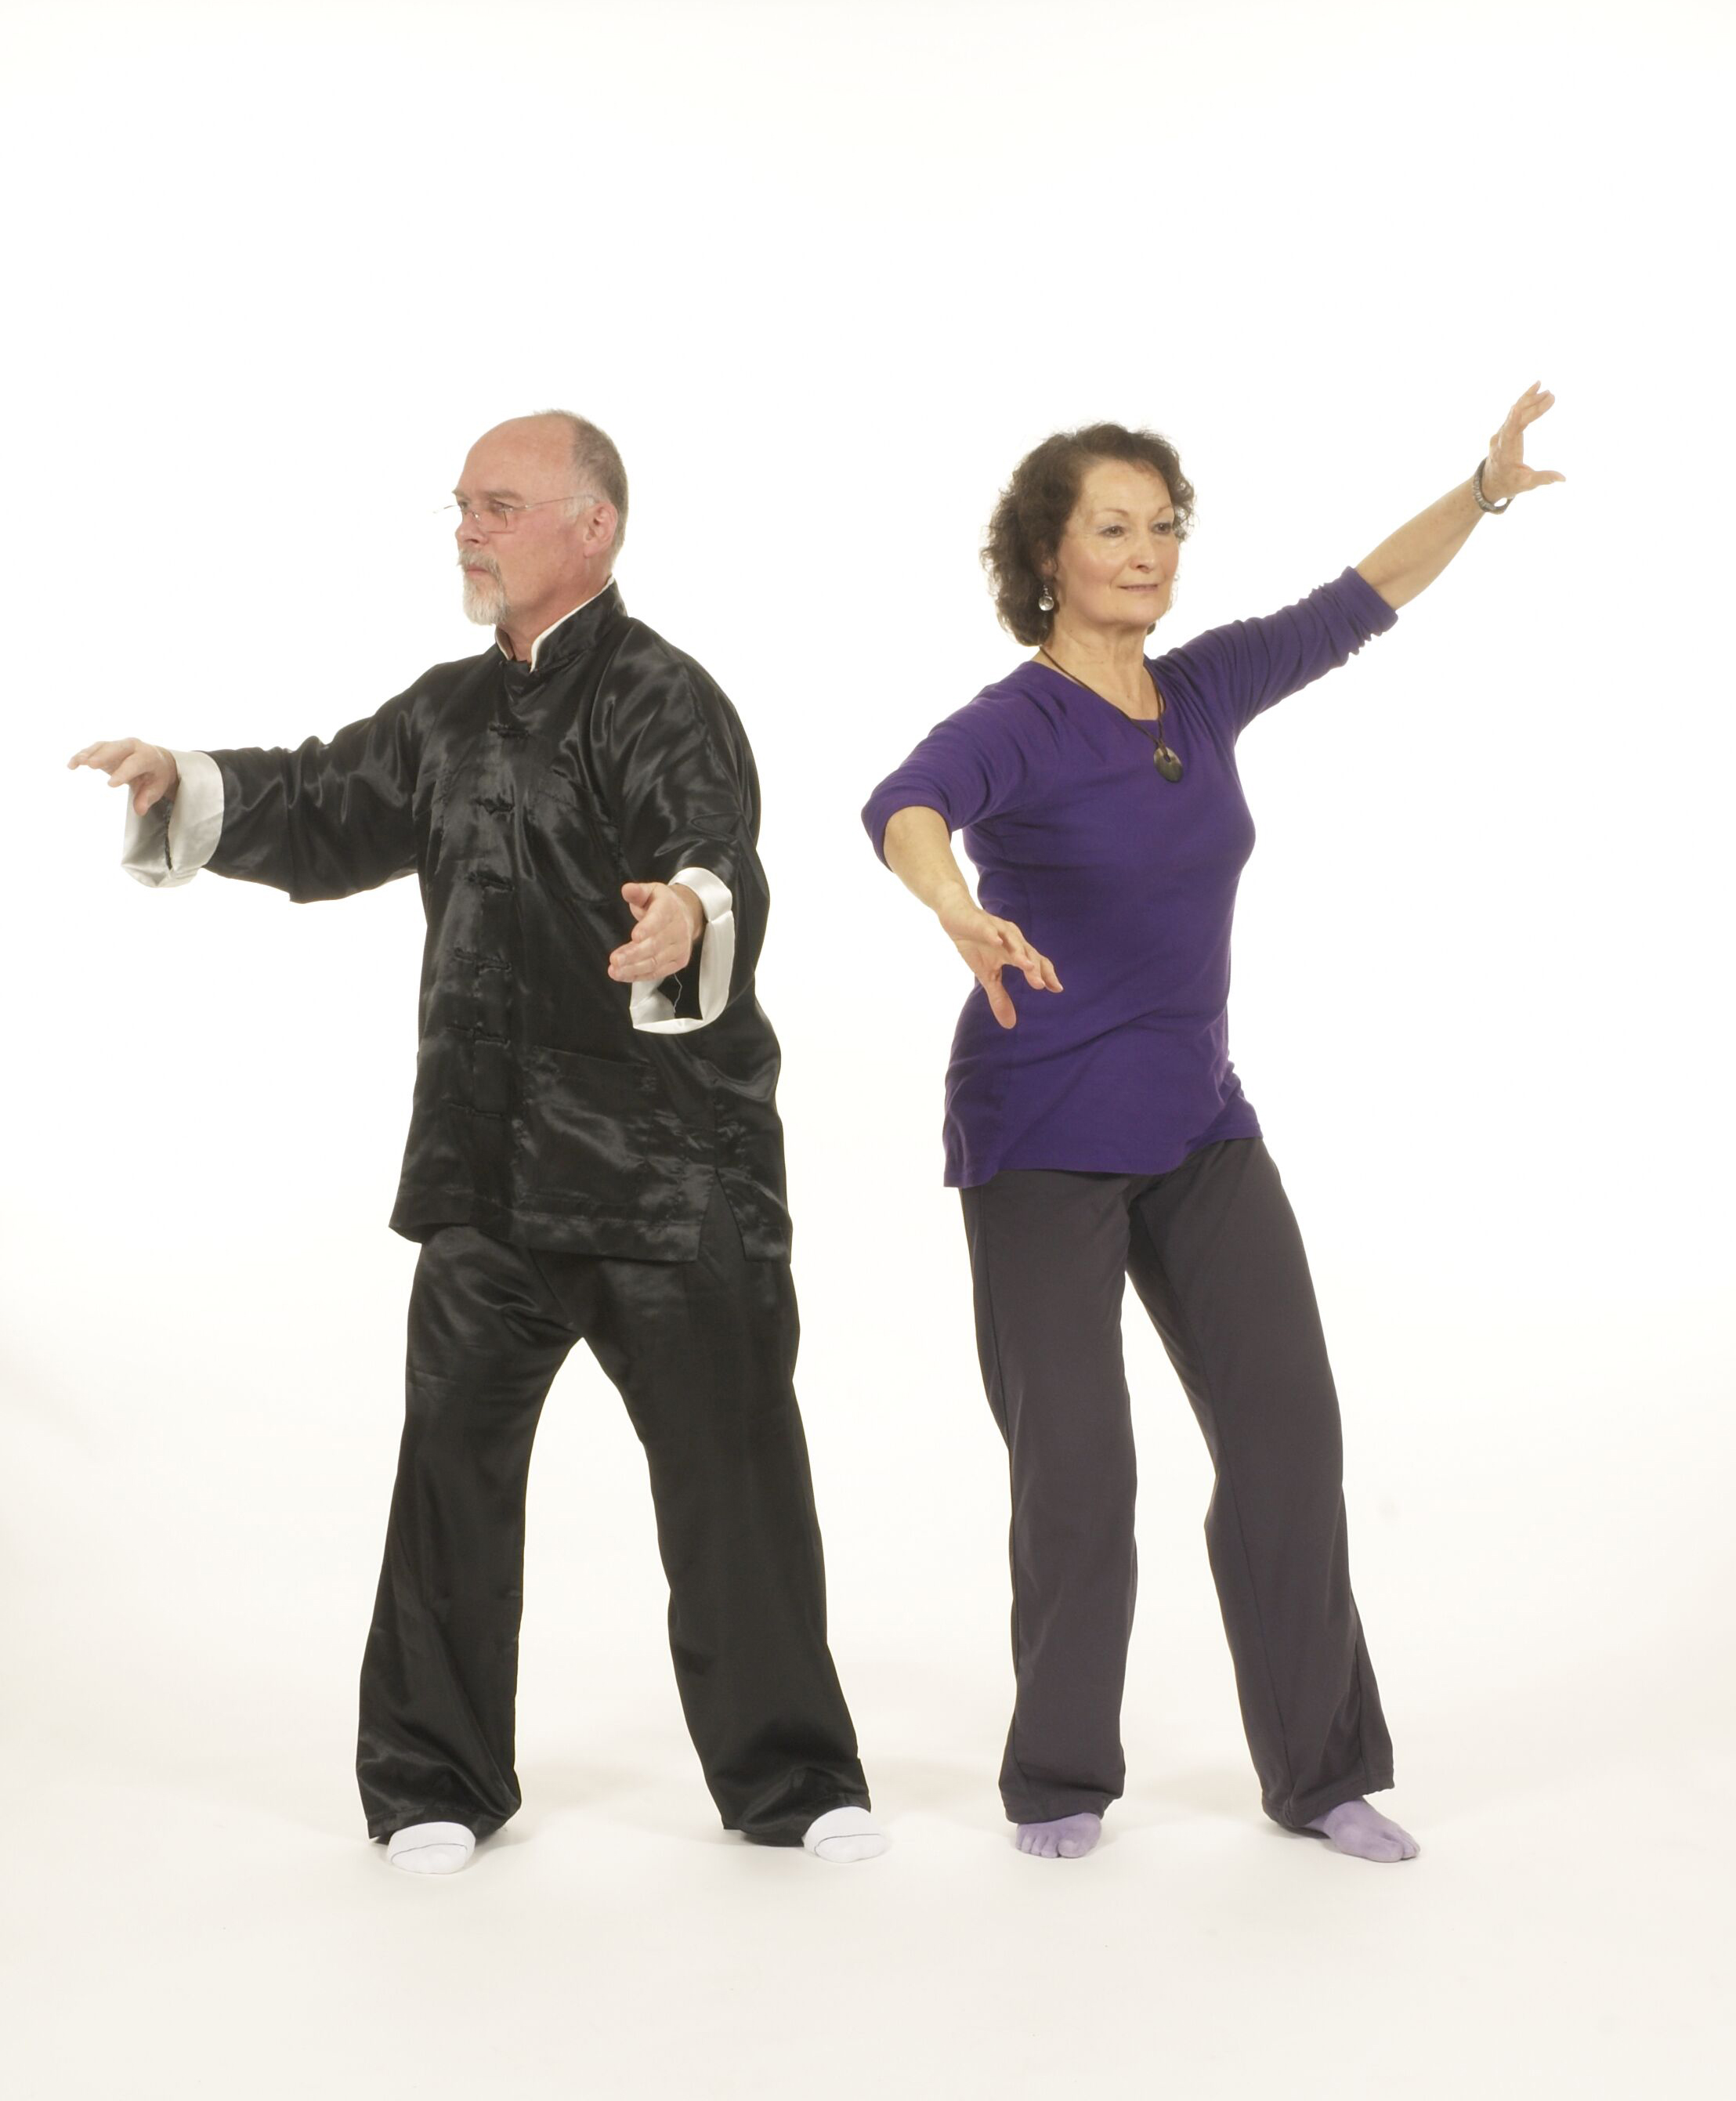 Ian Deavin and Judy Hammond - Tai Chi and Alexander Technique